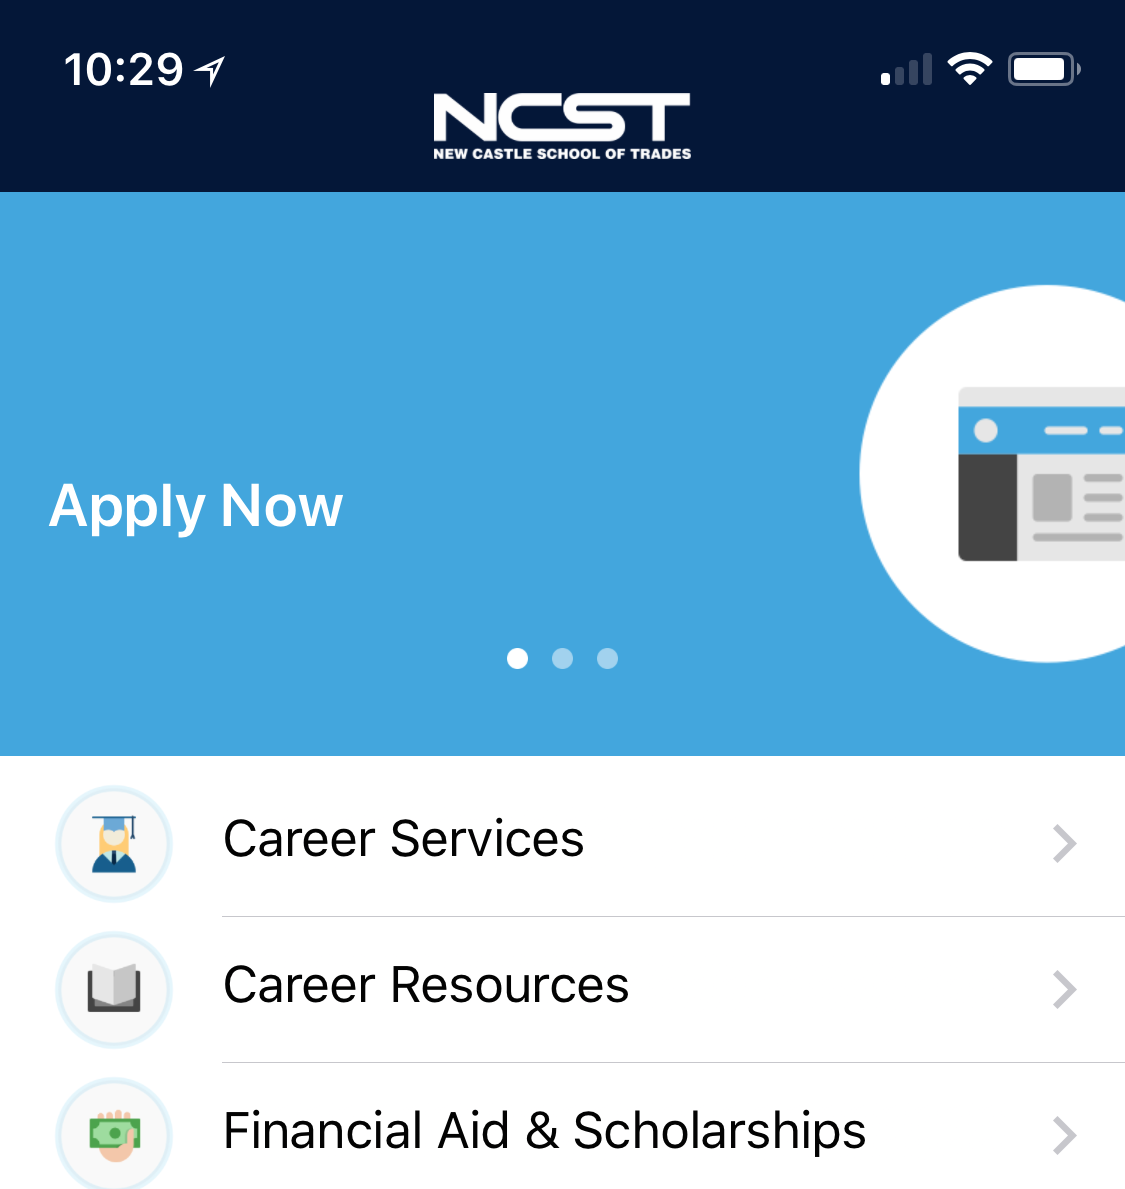 Learn about New Castle School of Trades, Stay In Touch, and Apply from your mobile device. - Begin Your Journey